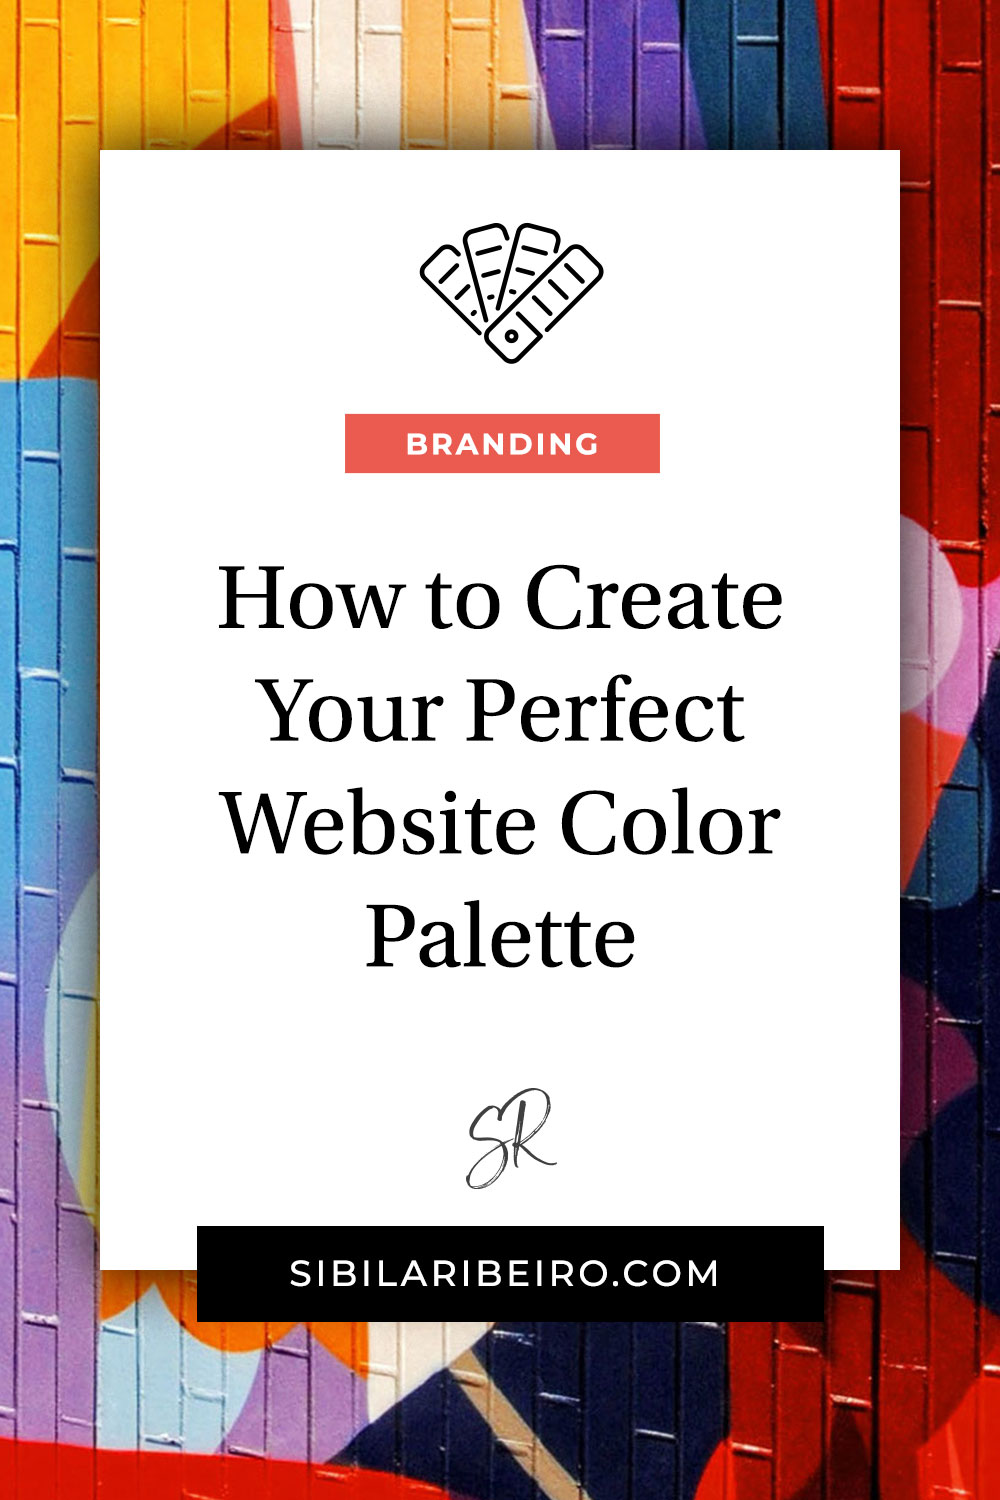 Ready to create the perfect color palette for your website but you don't know where to start? In this post, I share all my secrets to creating the perfect website color palette! #website #colorpalette #colorscheme #websitecolors